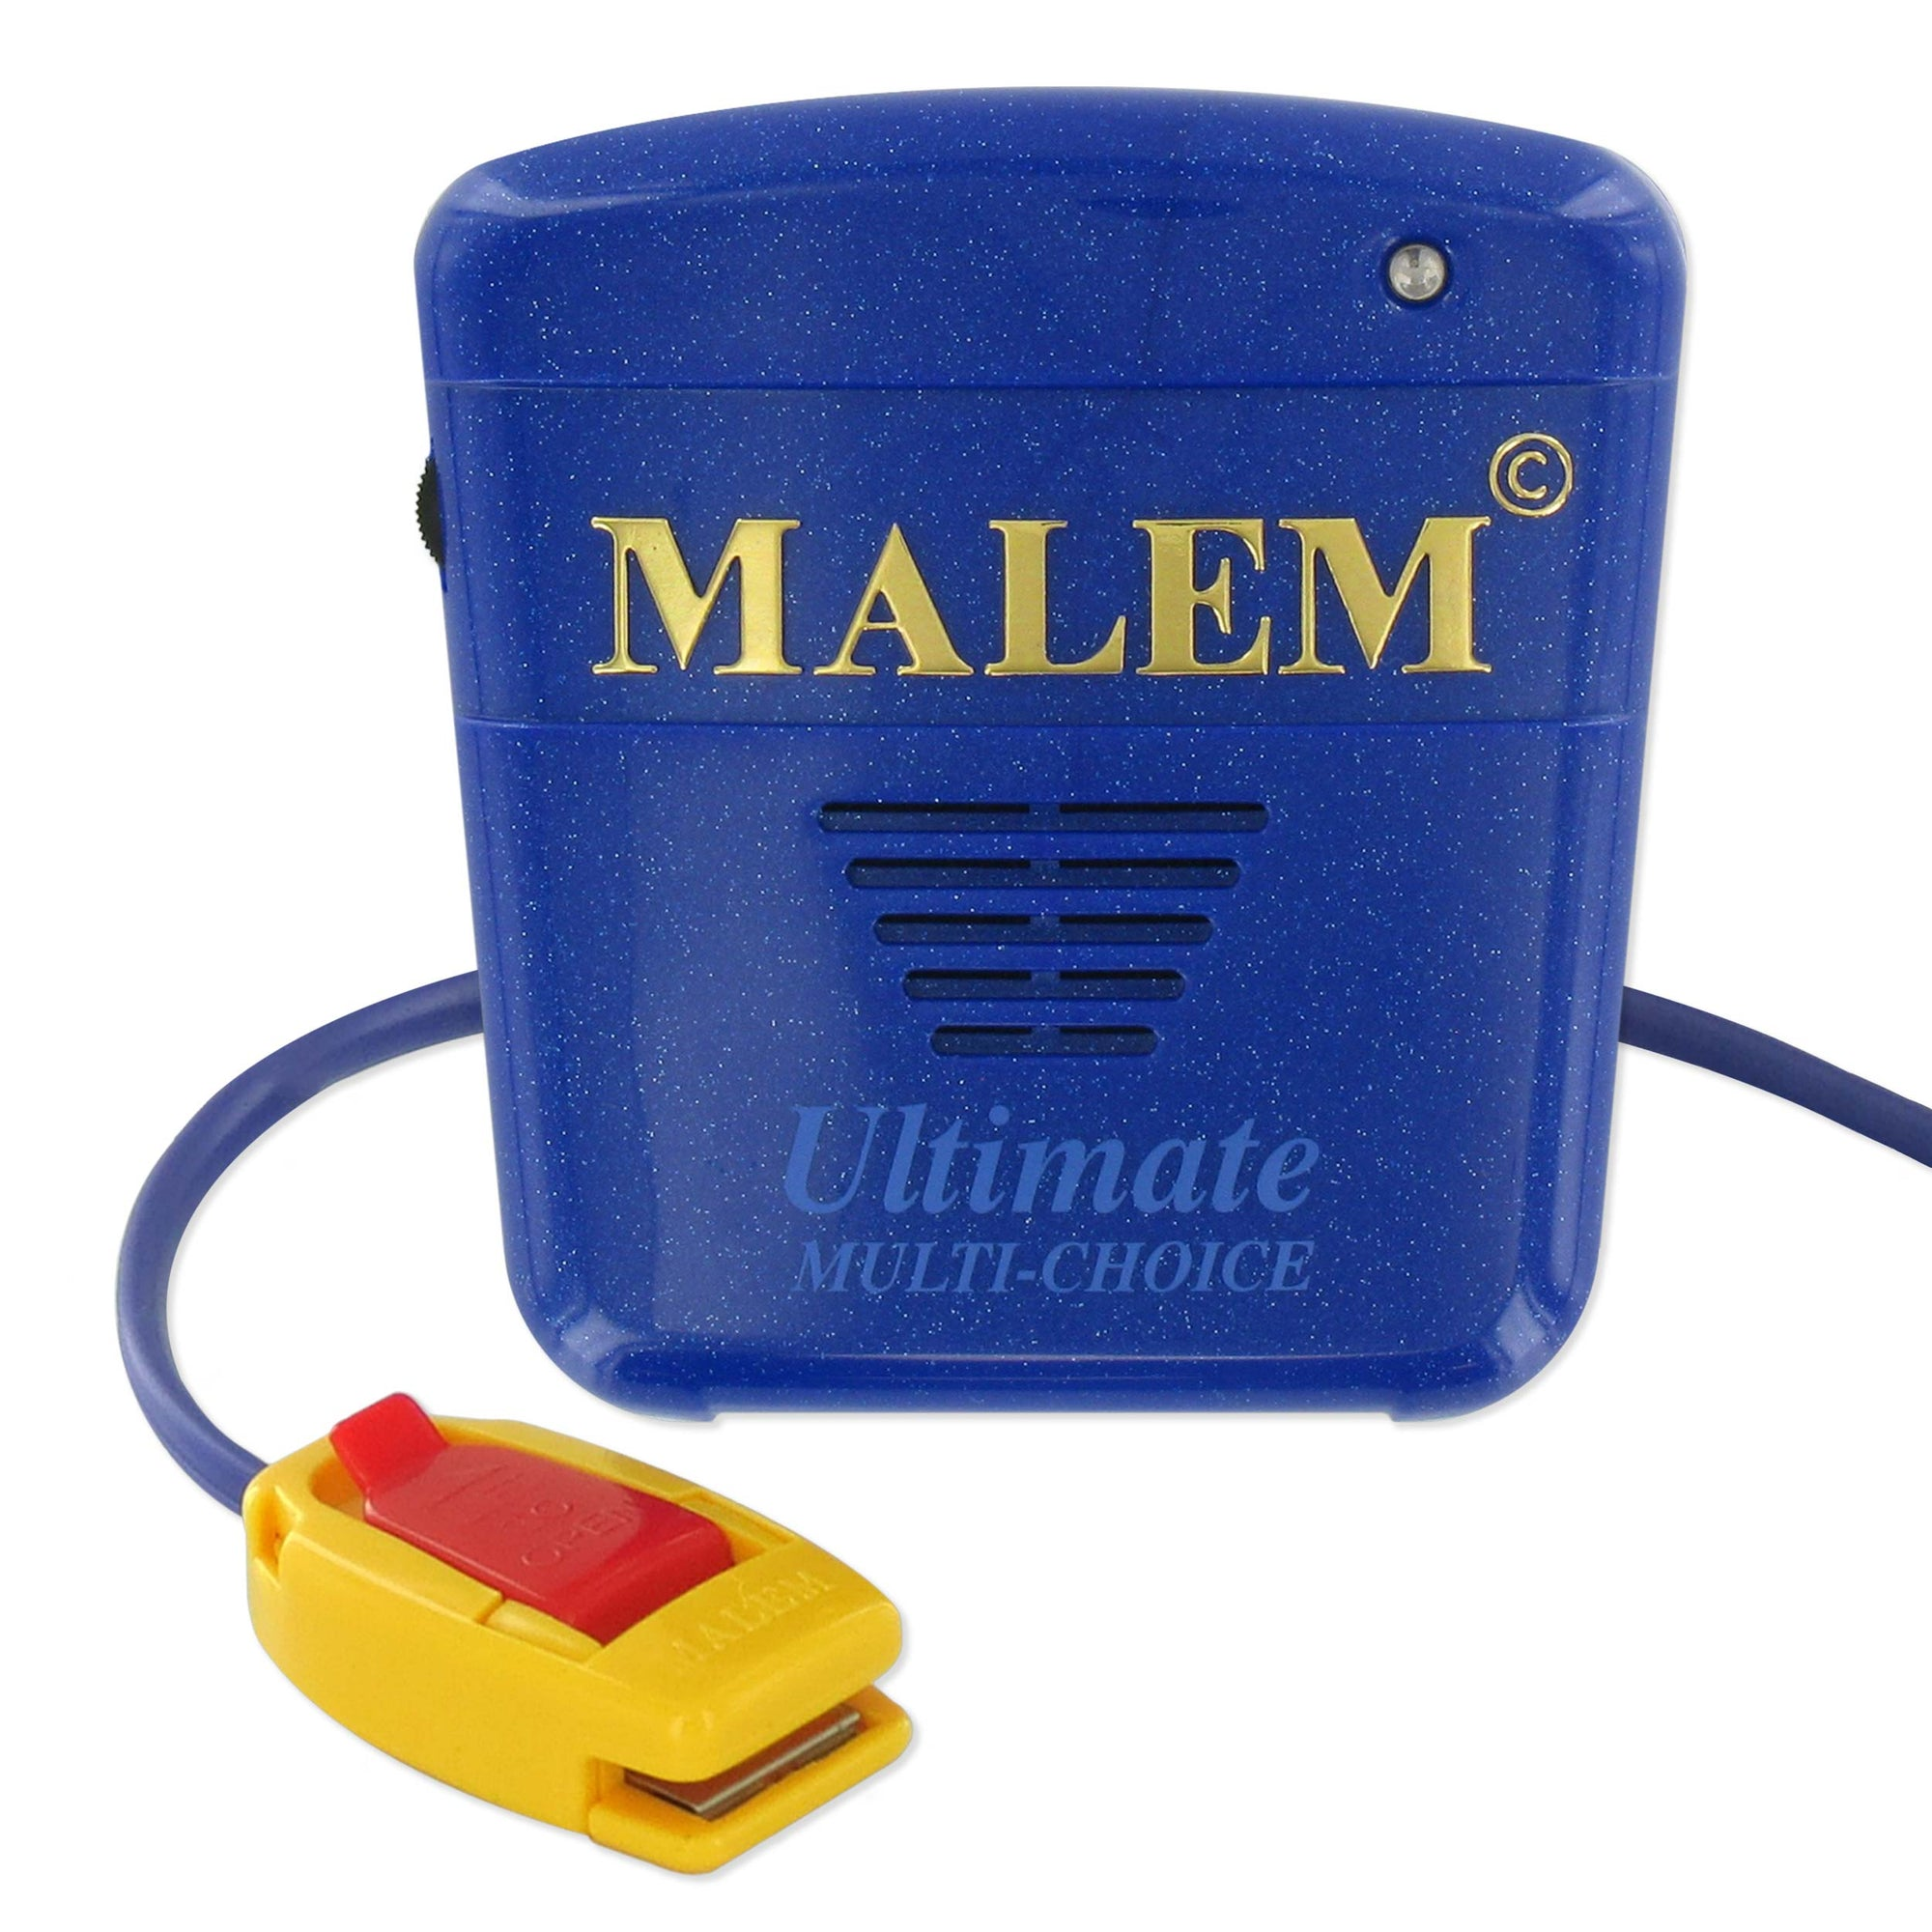 Alarms-Malem Multi-Choice Alarm